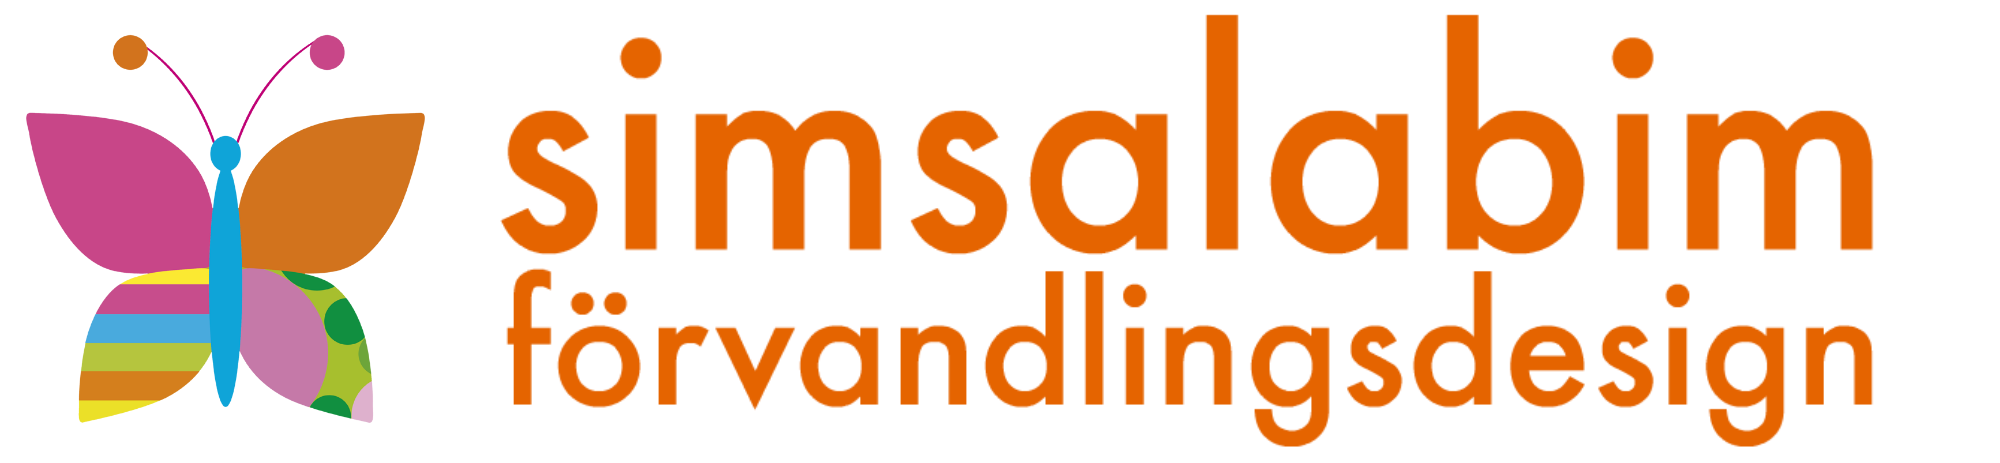 Simsalabim Förvandlingsdesign_Logotyp_Mobilversion_apr2017